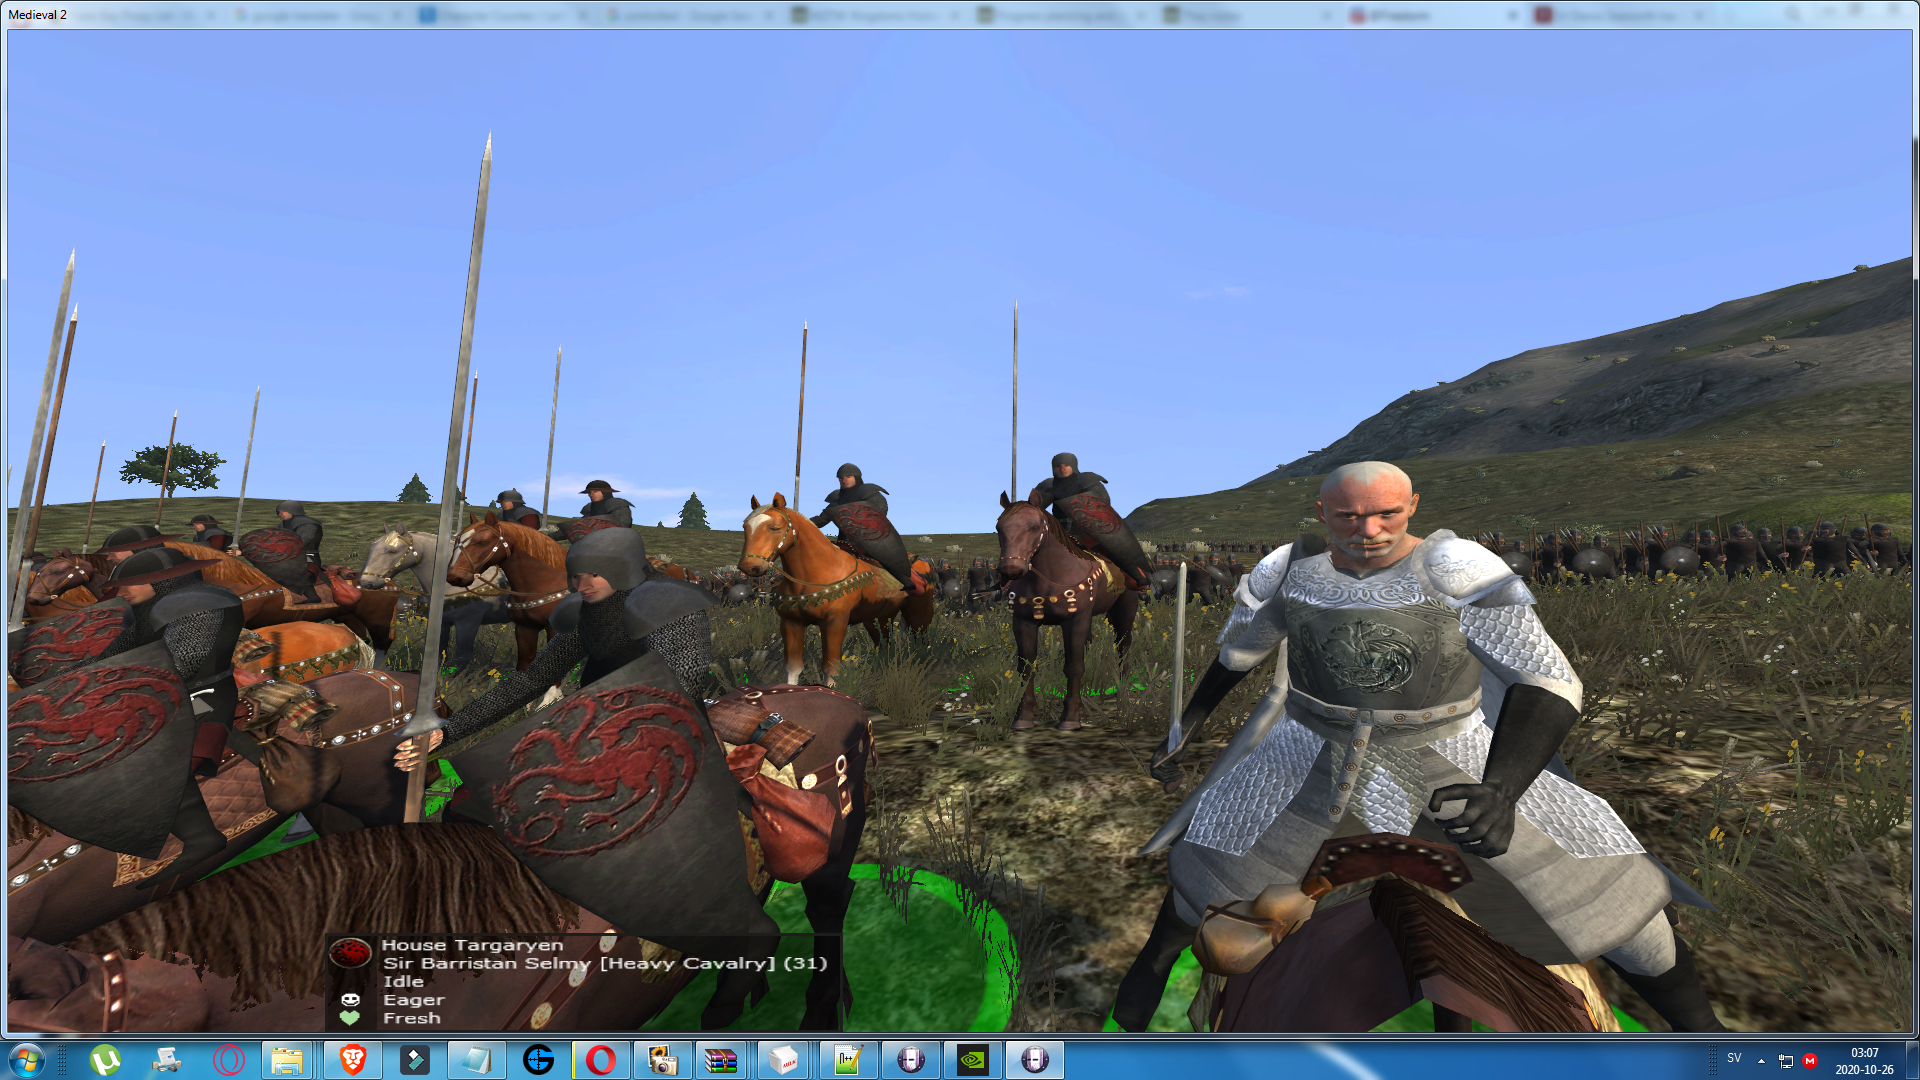 Sir Barristan Selmy has been added as a new hero to the mod!